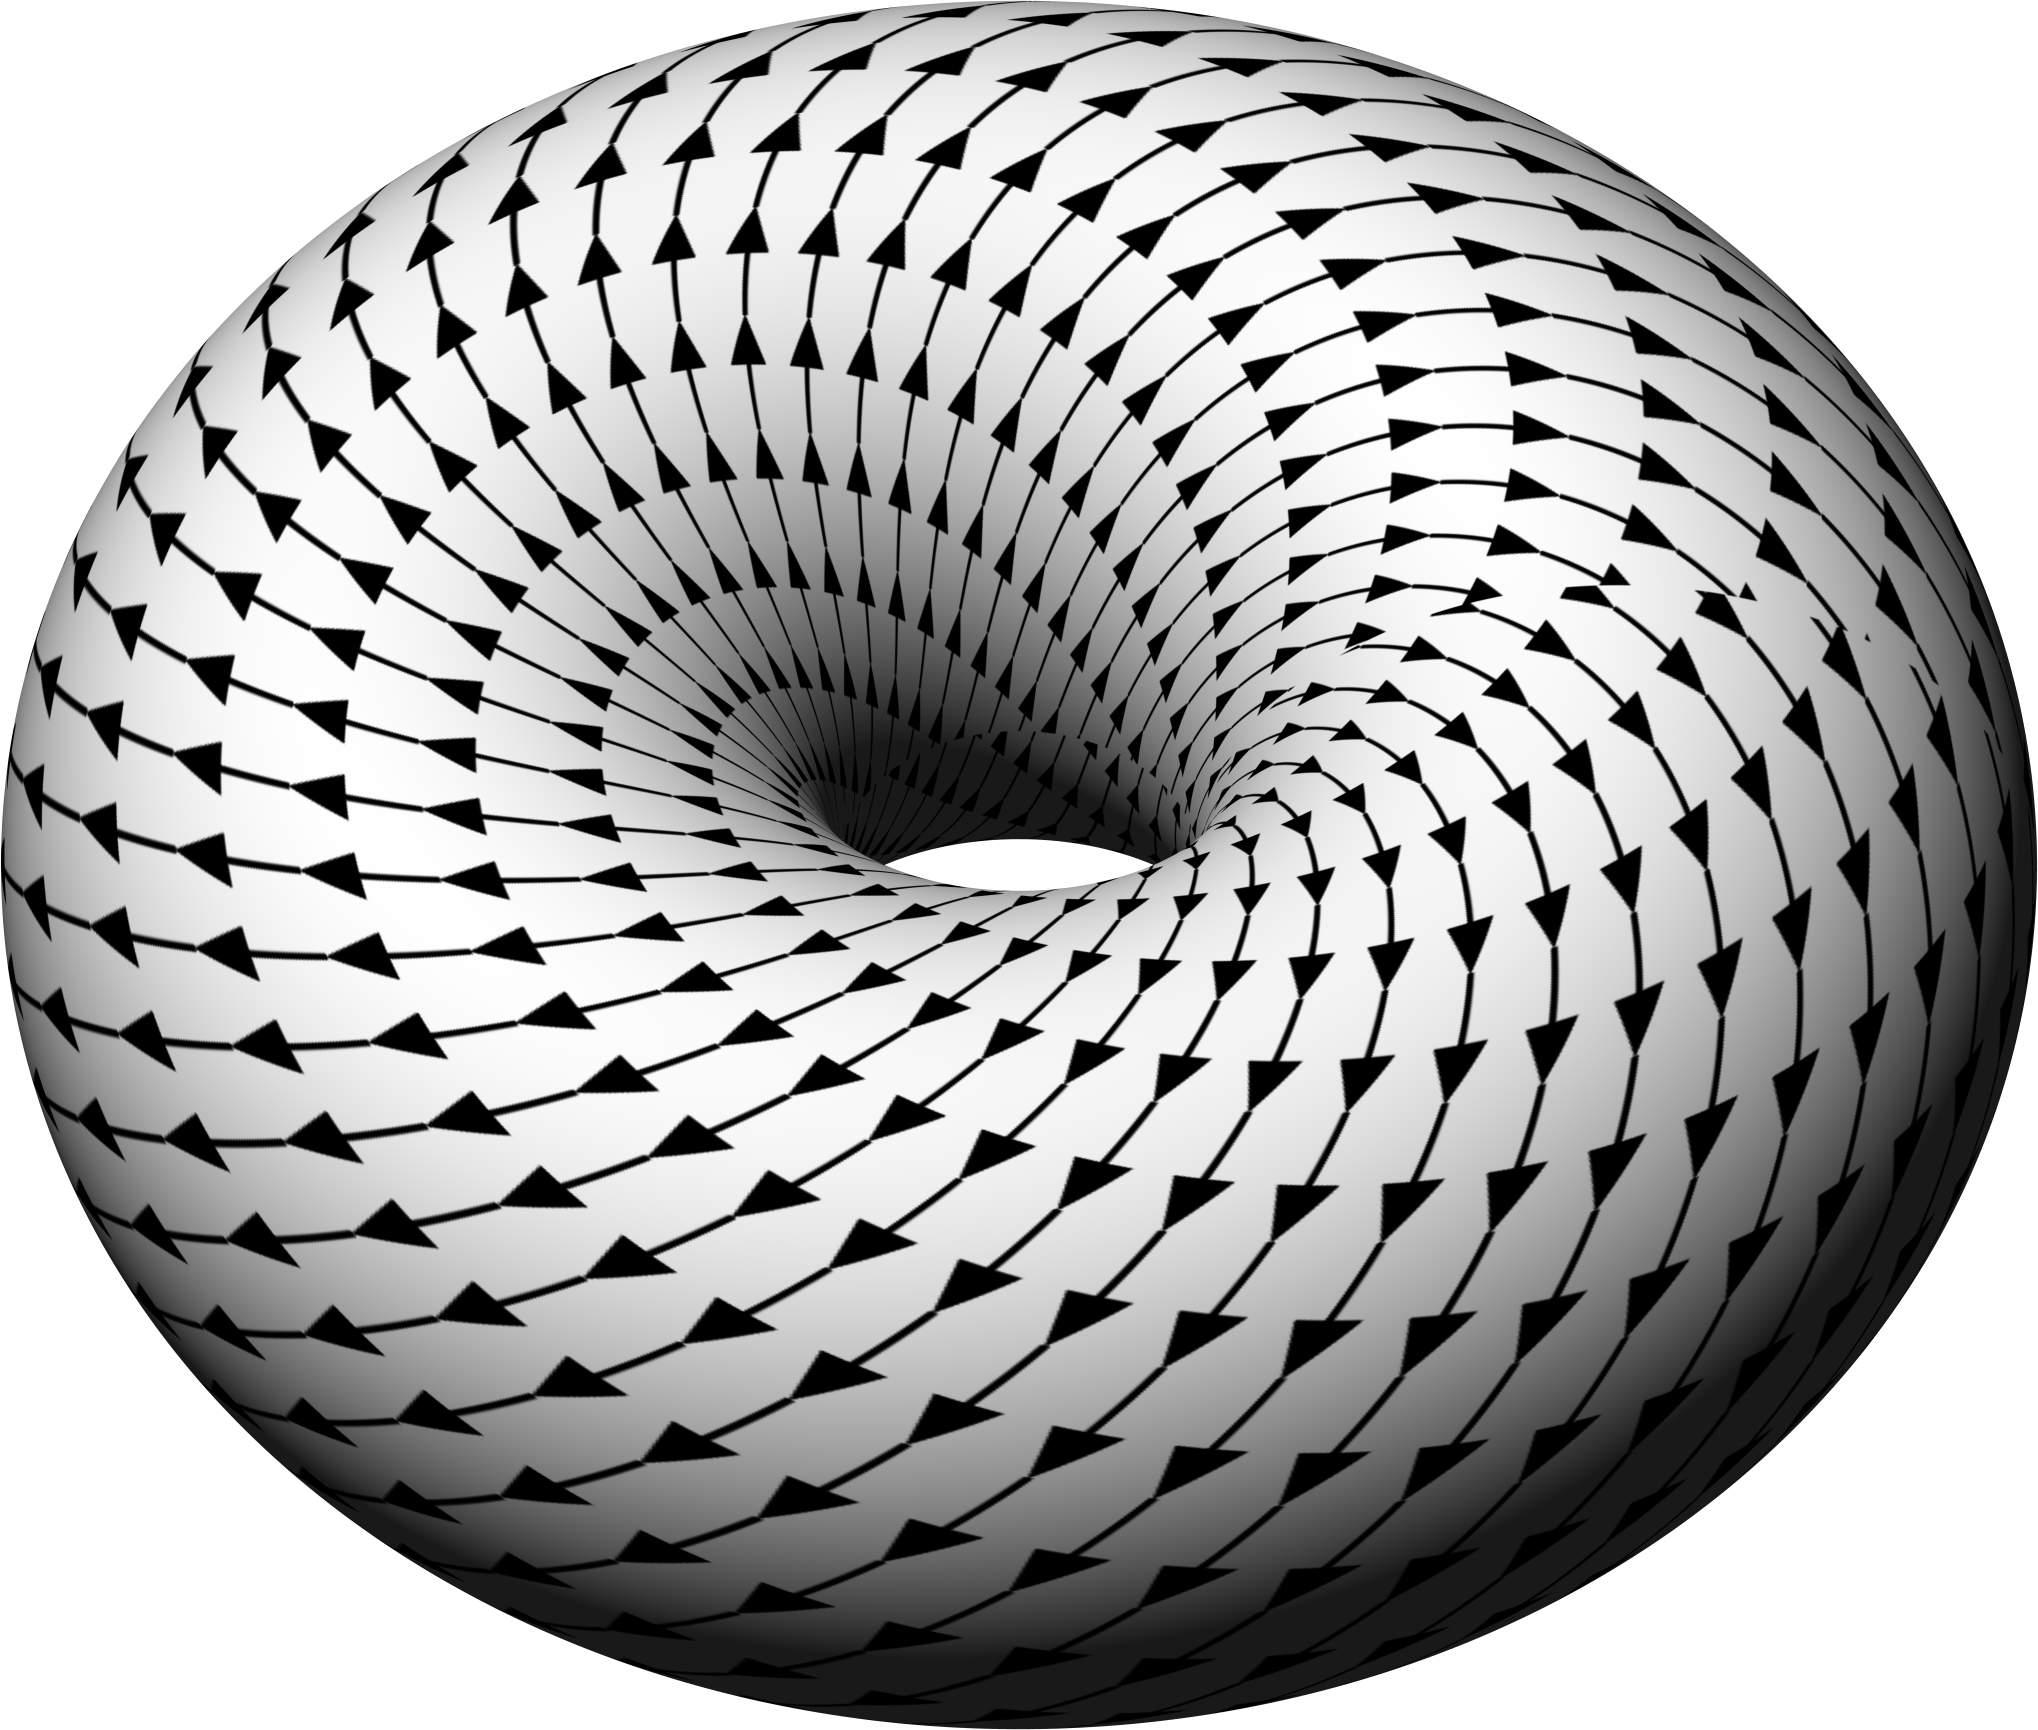 https://upload.wikimedia.org/wikipedia/commons/b/b4/Torus_vectors_oblique.jpg